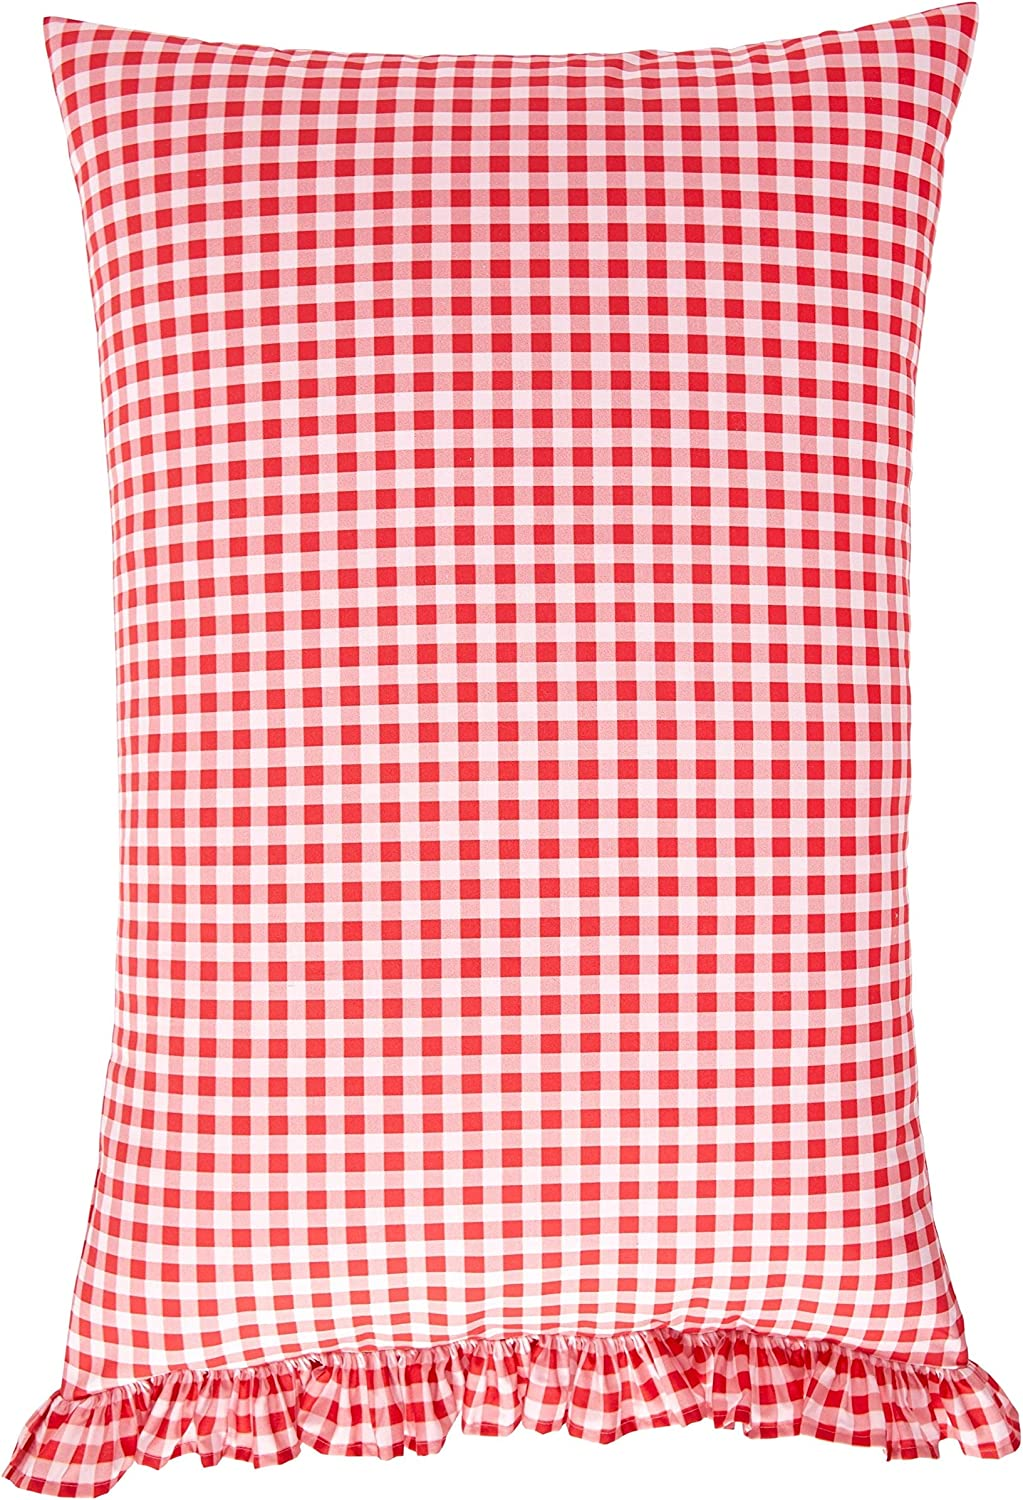 NEW Pioneer Woman Gingham Ruffle KING Sheet Set Coral RED Flat Fitted Pillowcase